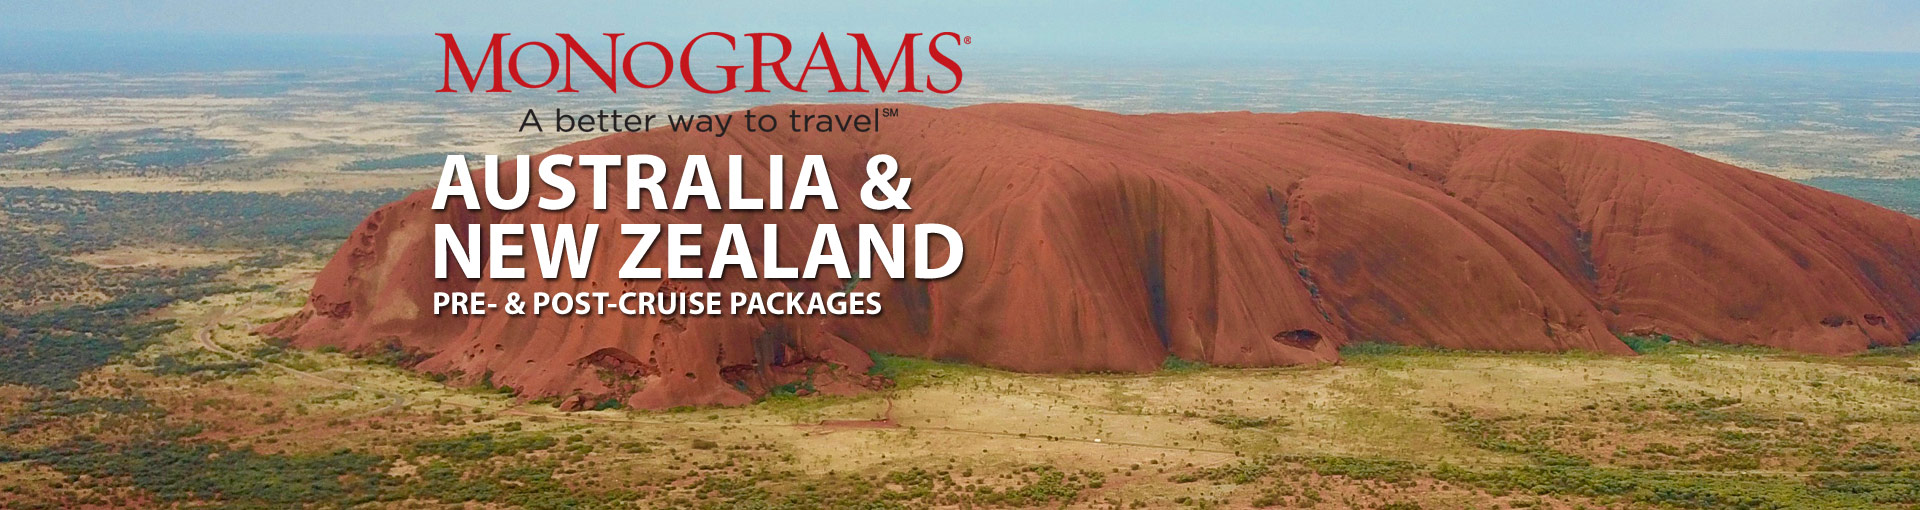 Monograms Australia and New Zealand Vacation Packages